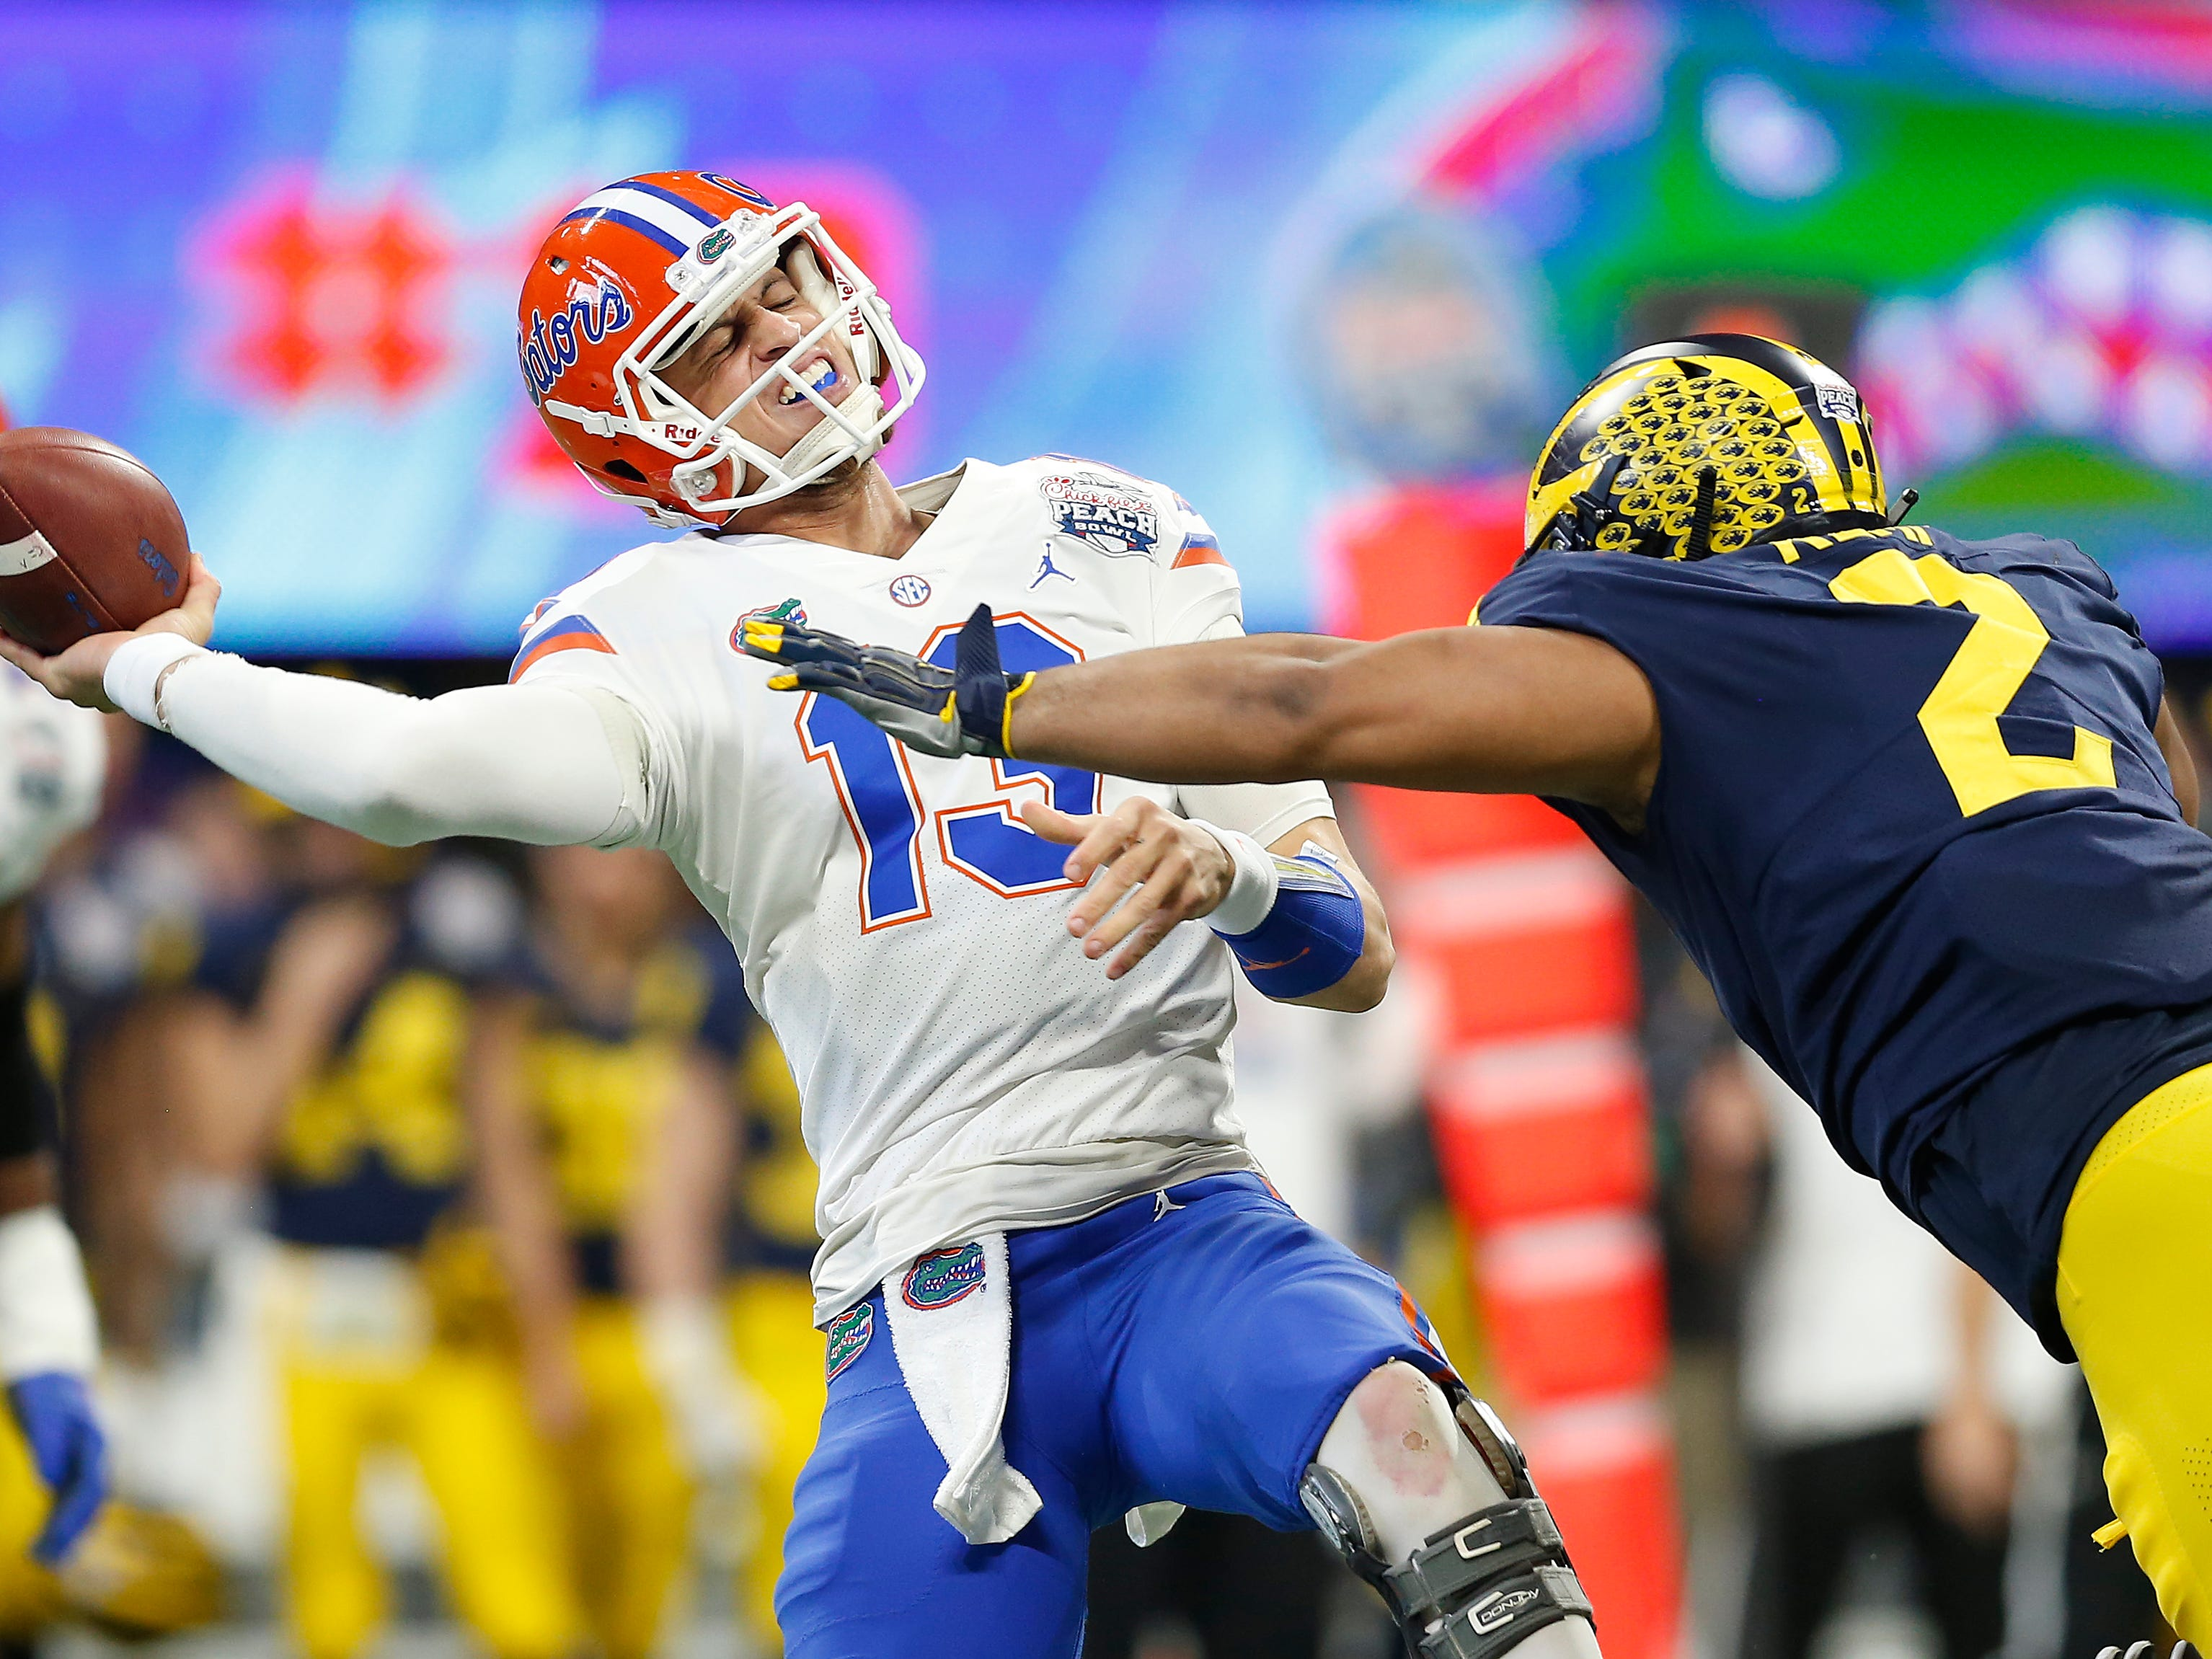 Florida QB Feleipe Franks throws under pressure from Michigan defensive lineman Carlo Kemp in the first quarter of the Peach Bowl on Saturday, Dec. 29, 2018, in Atlanta.